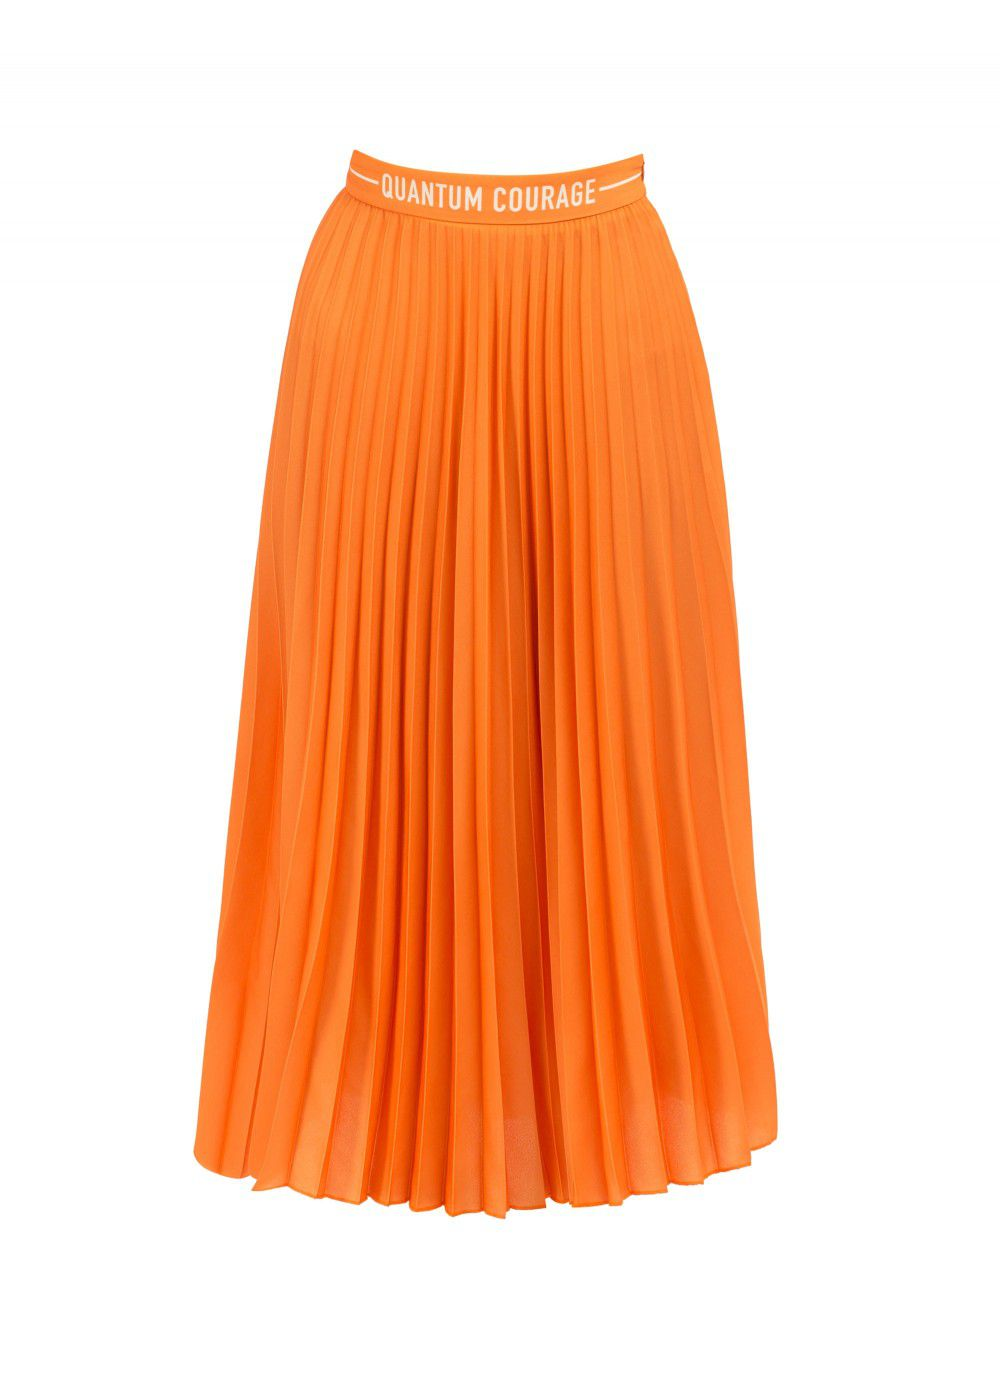 Quantum Courage Pleated Skirt